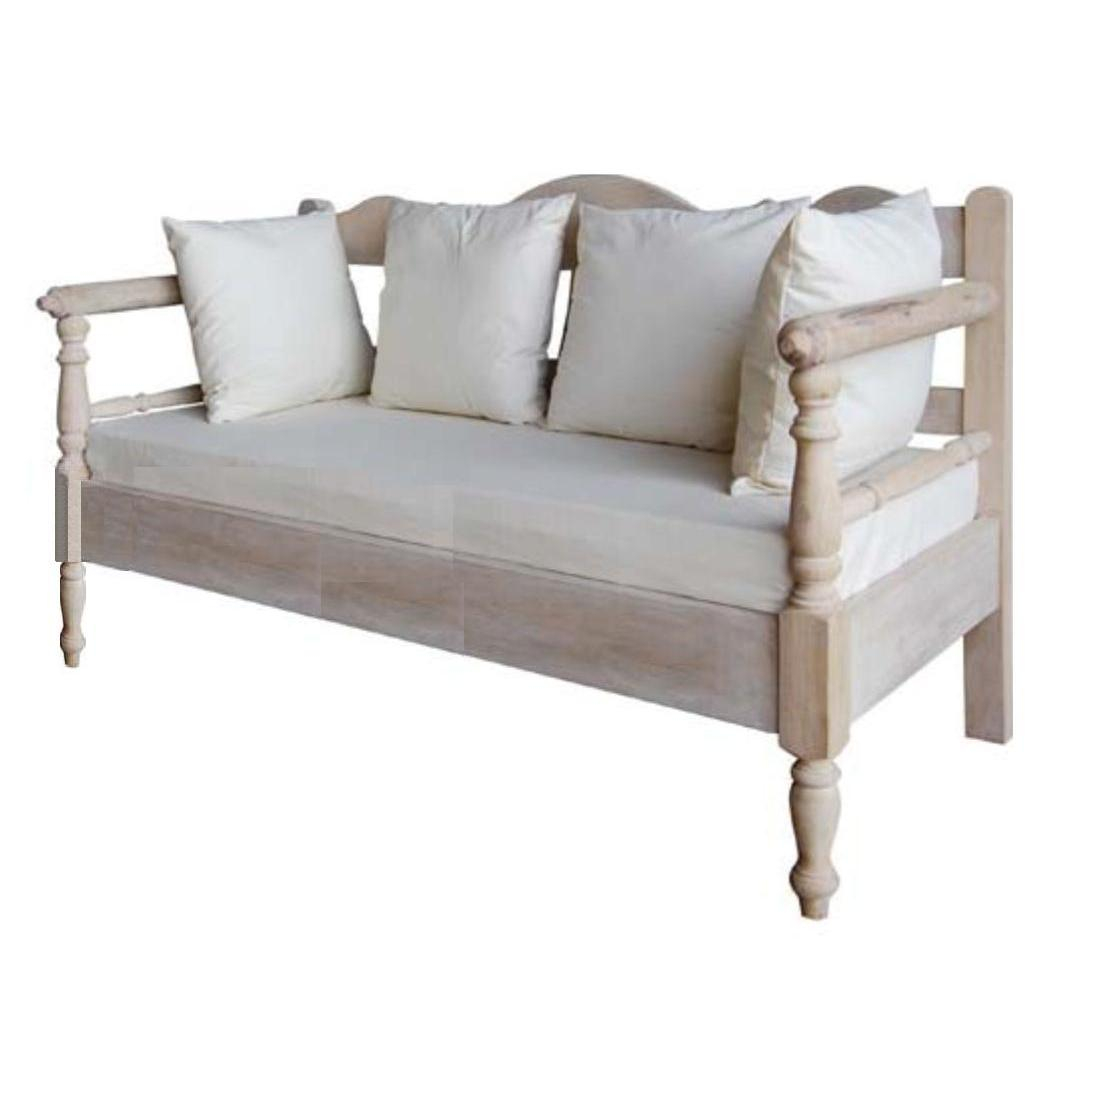 2 Seater Sofa Antique White